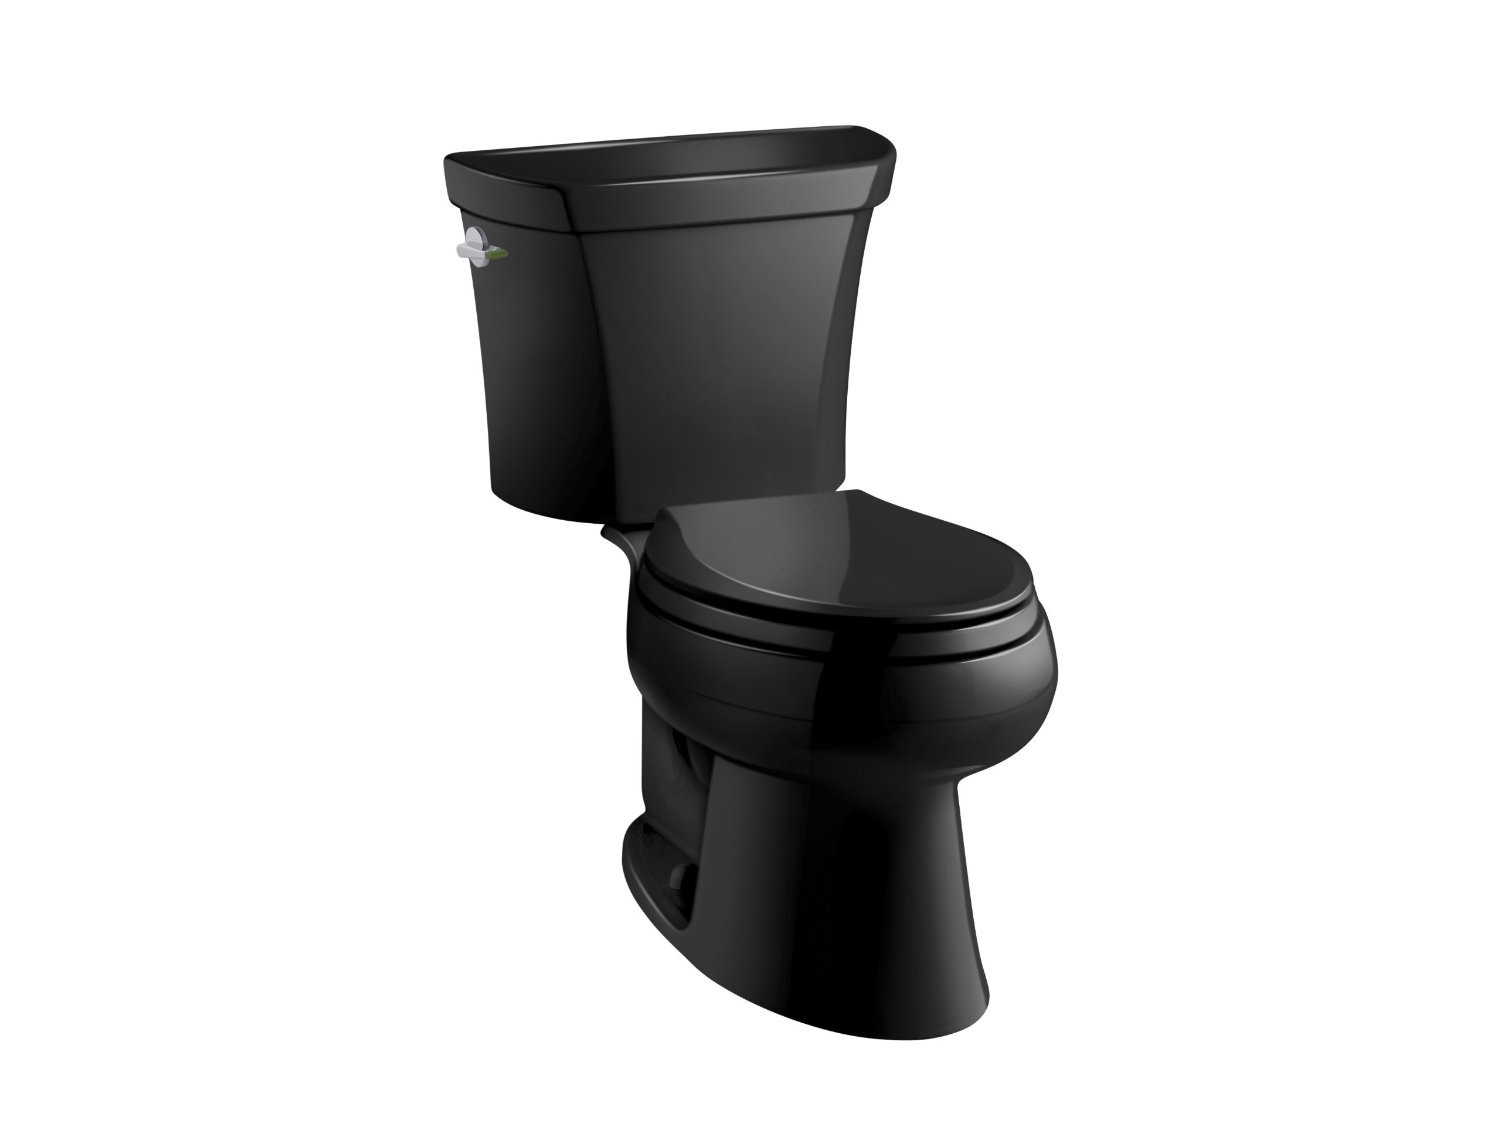 KOHLER K-3988-7 Wellworth Two-Piece Elongated Dual-Flush Toilet with Class Five Flush System and Left-Hand Trip Lever, Black